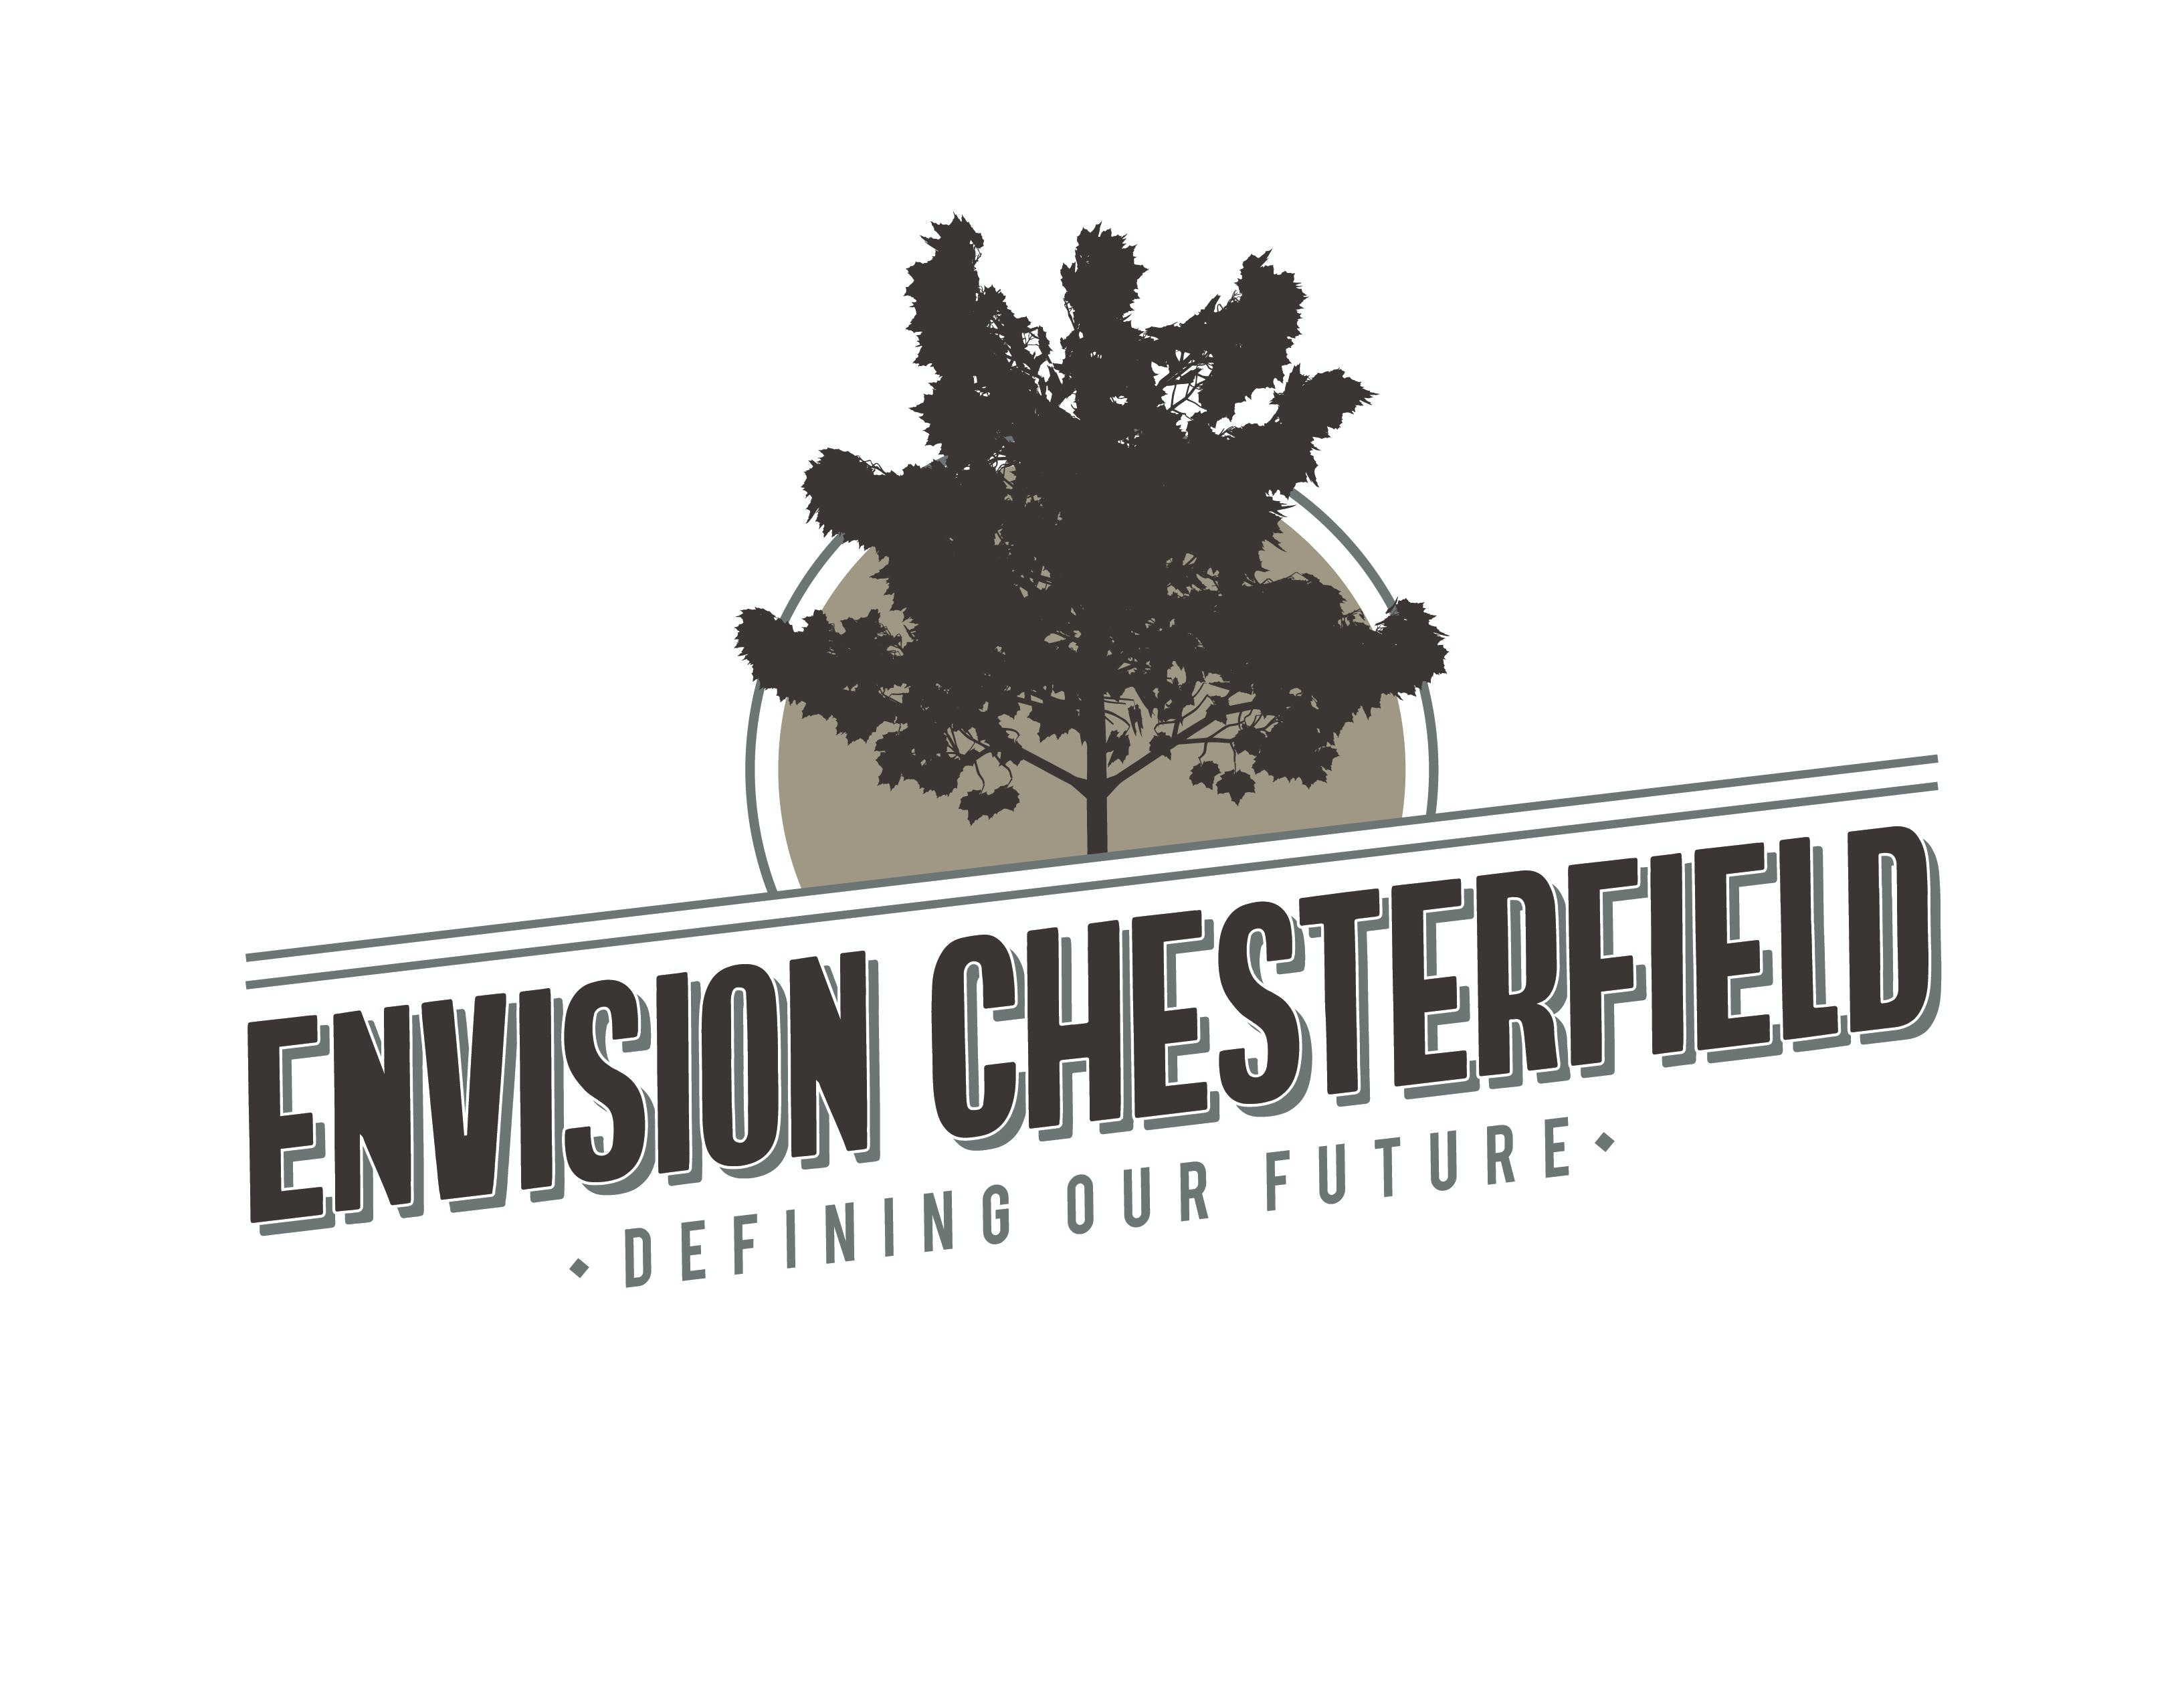 Envision Chesterfield